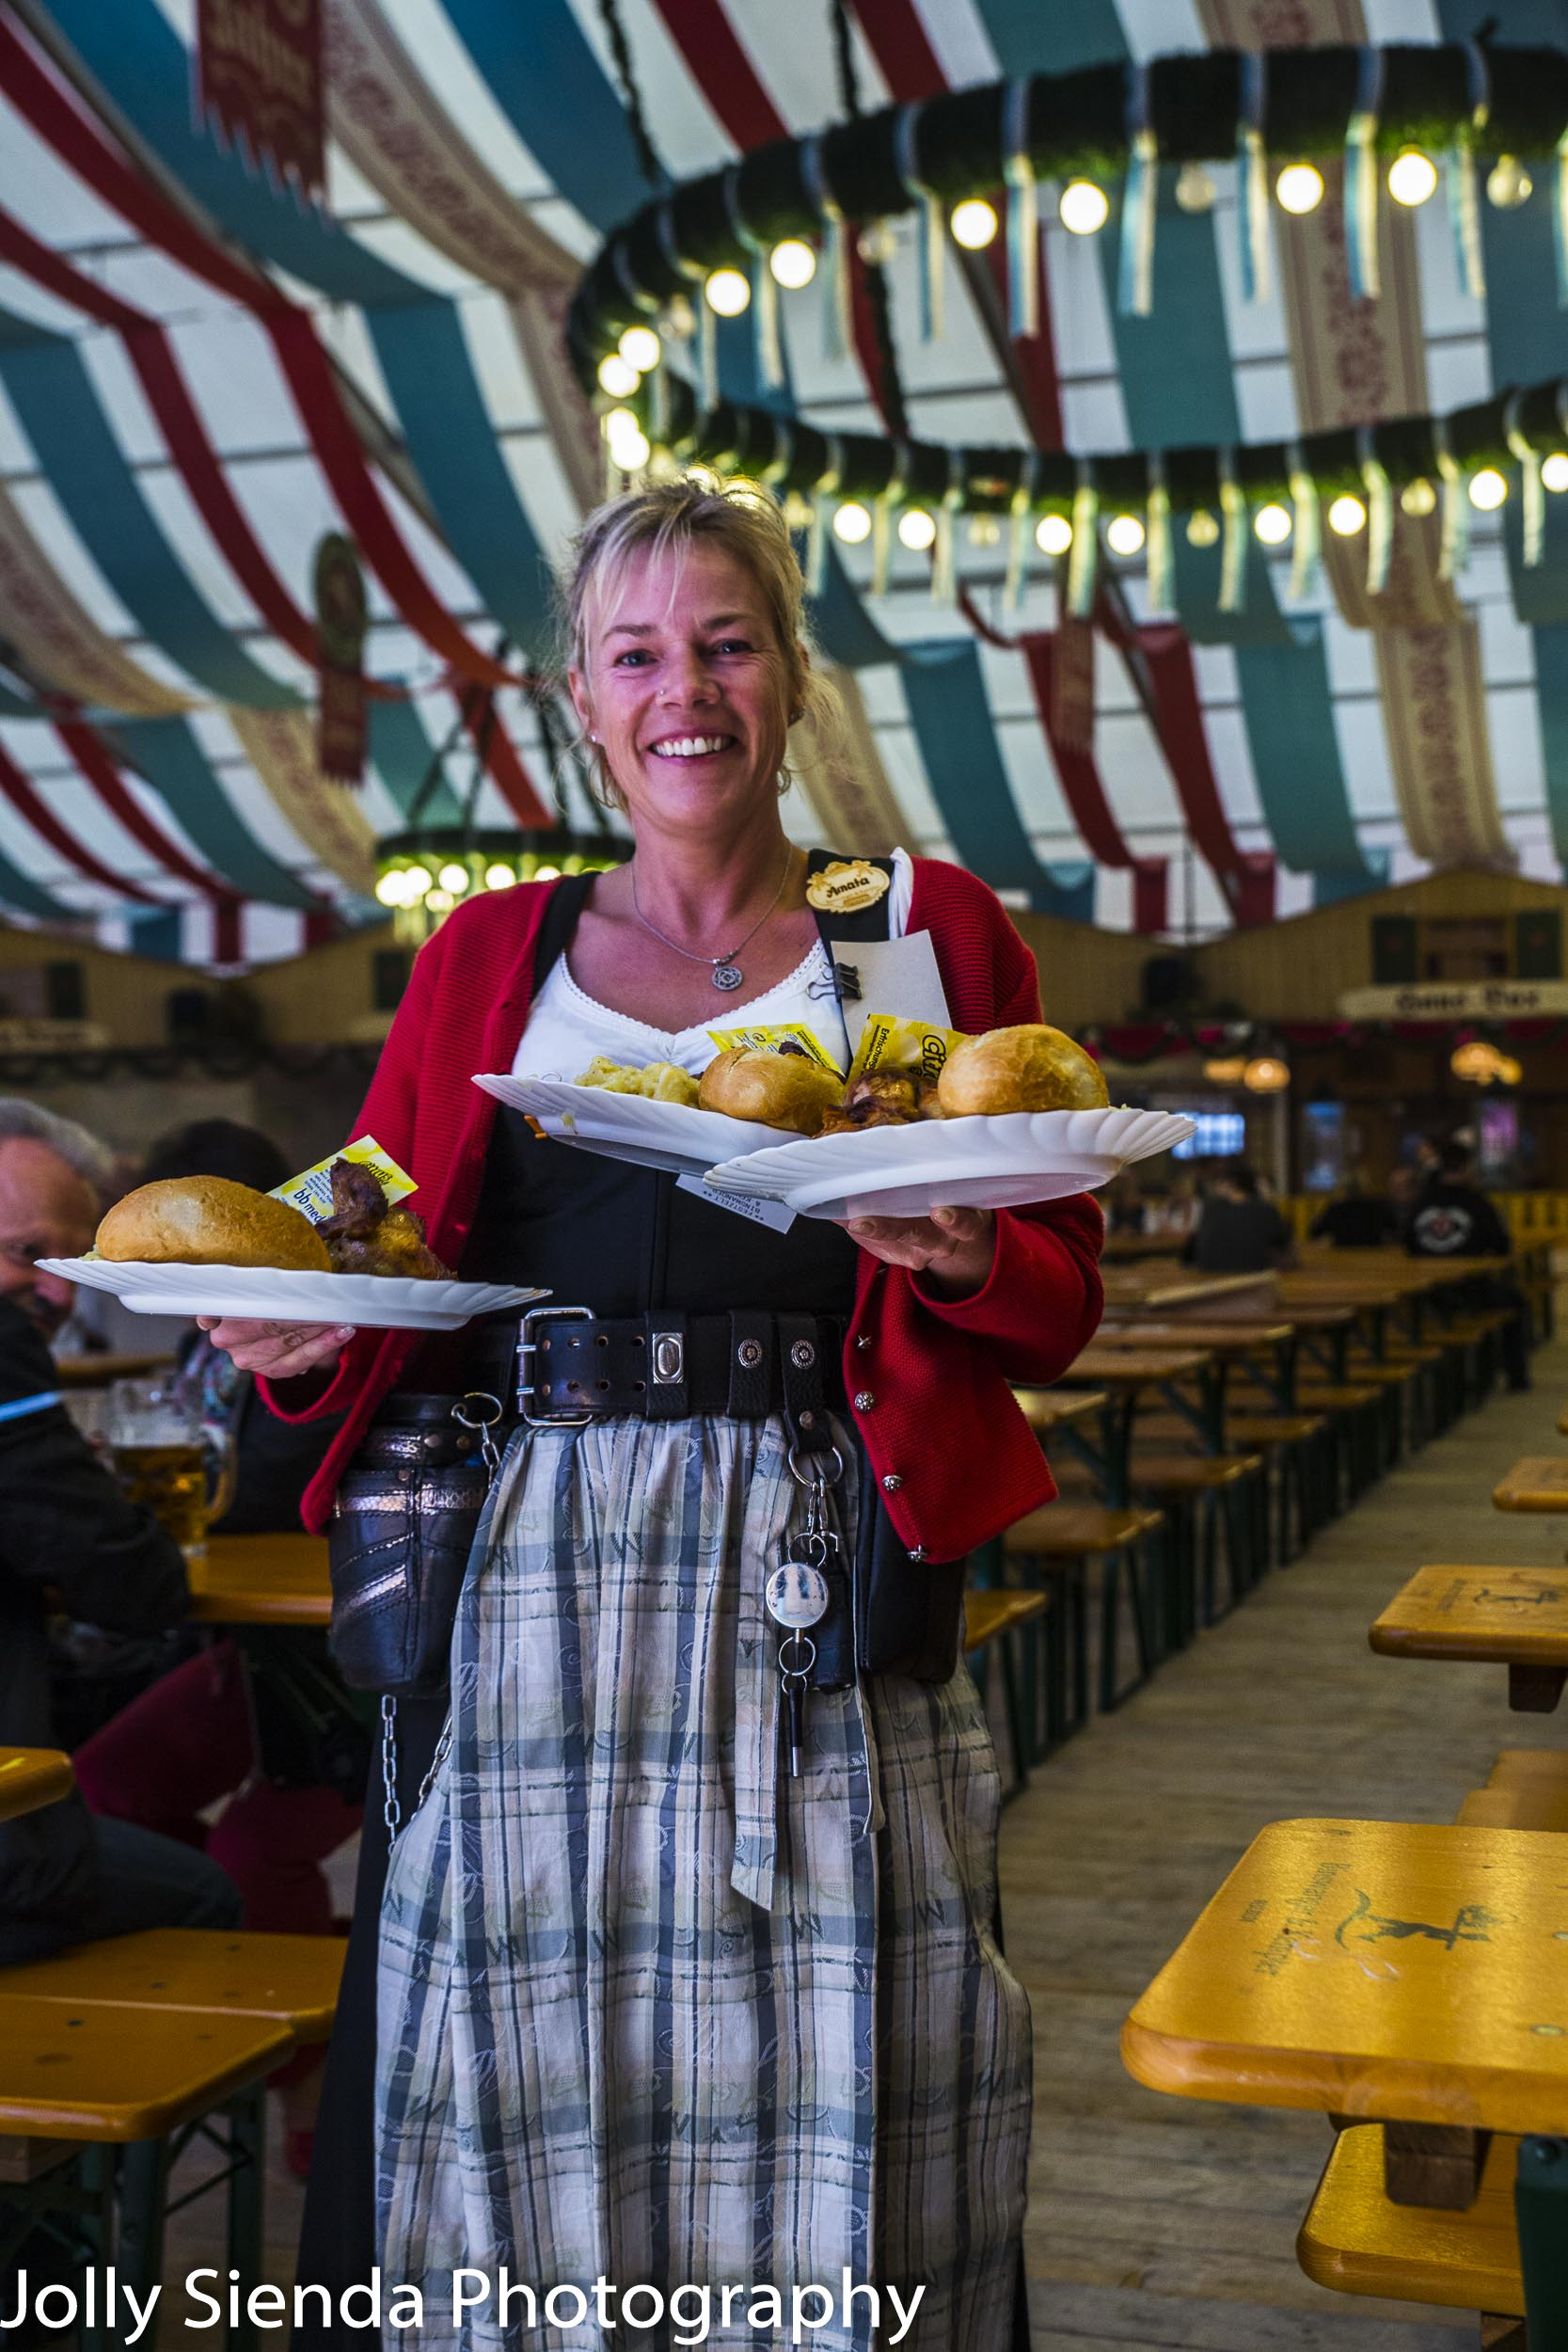 Fraulein waitress brings the schnitzel